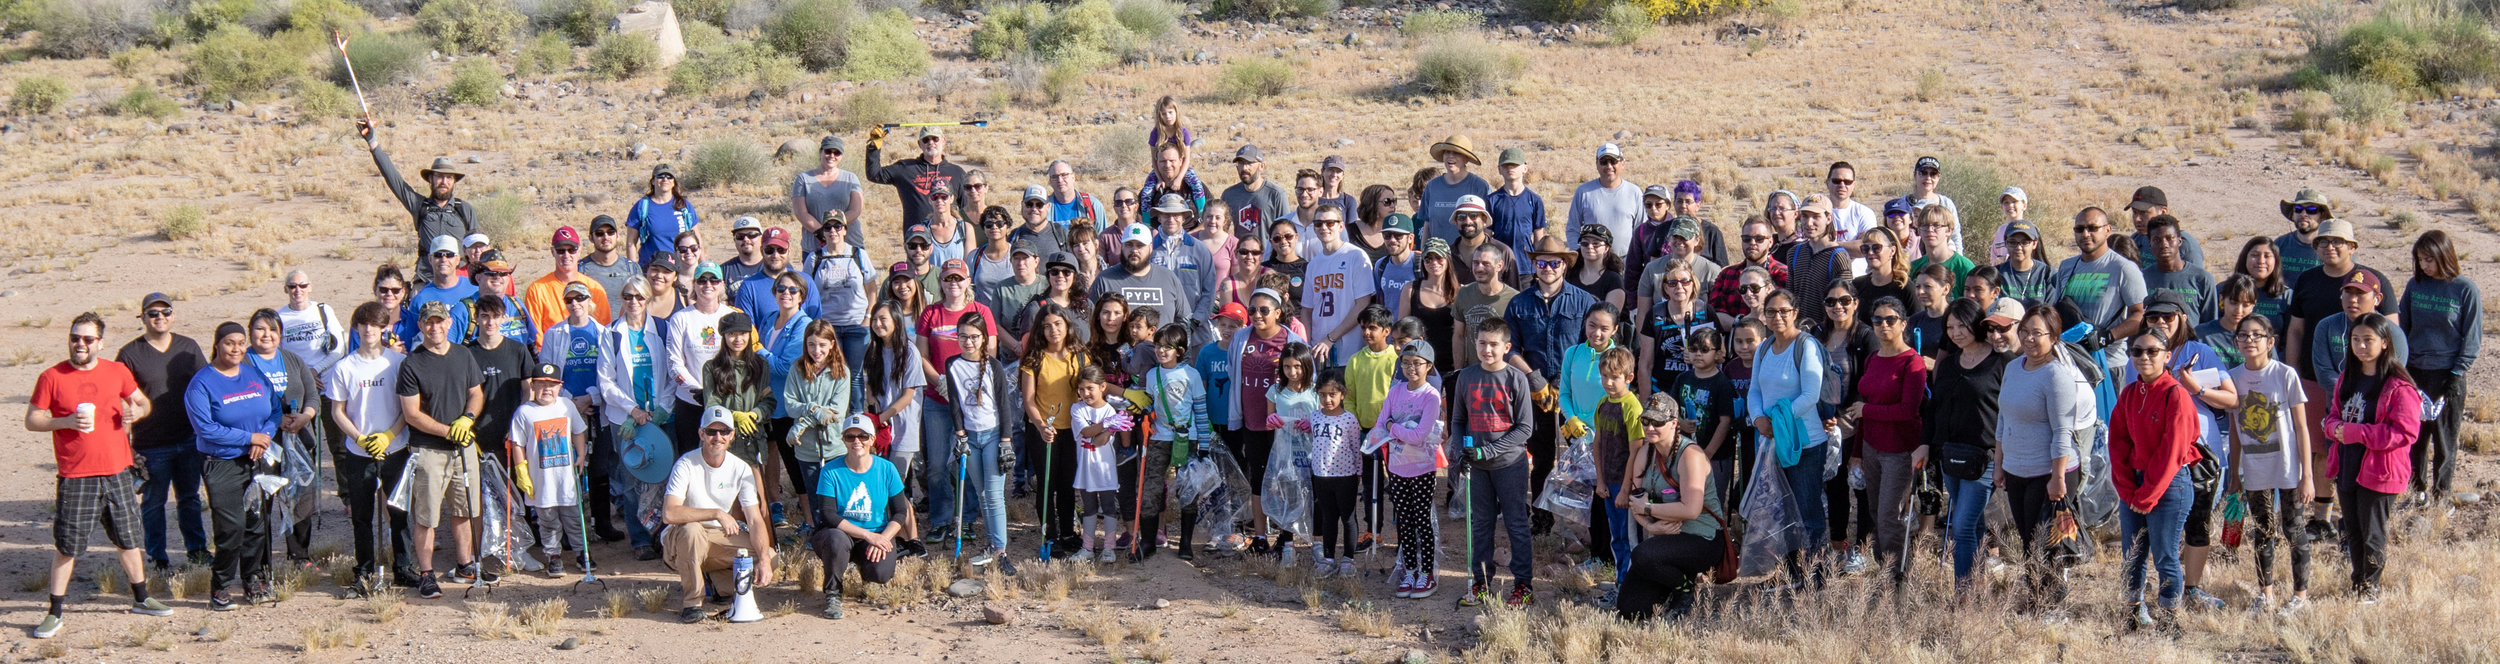 04/06/19 - Rio Salado Cleanup behind Liberty WildlifeClick HERE to view the project.